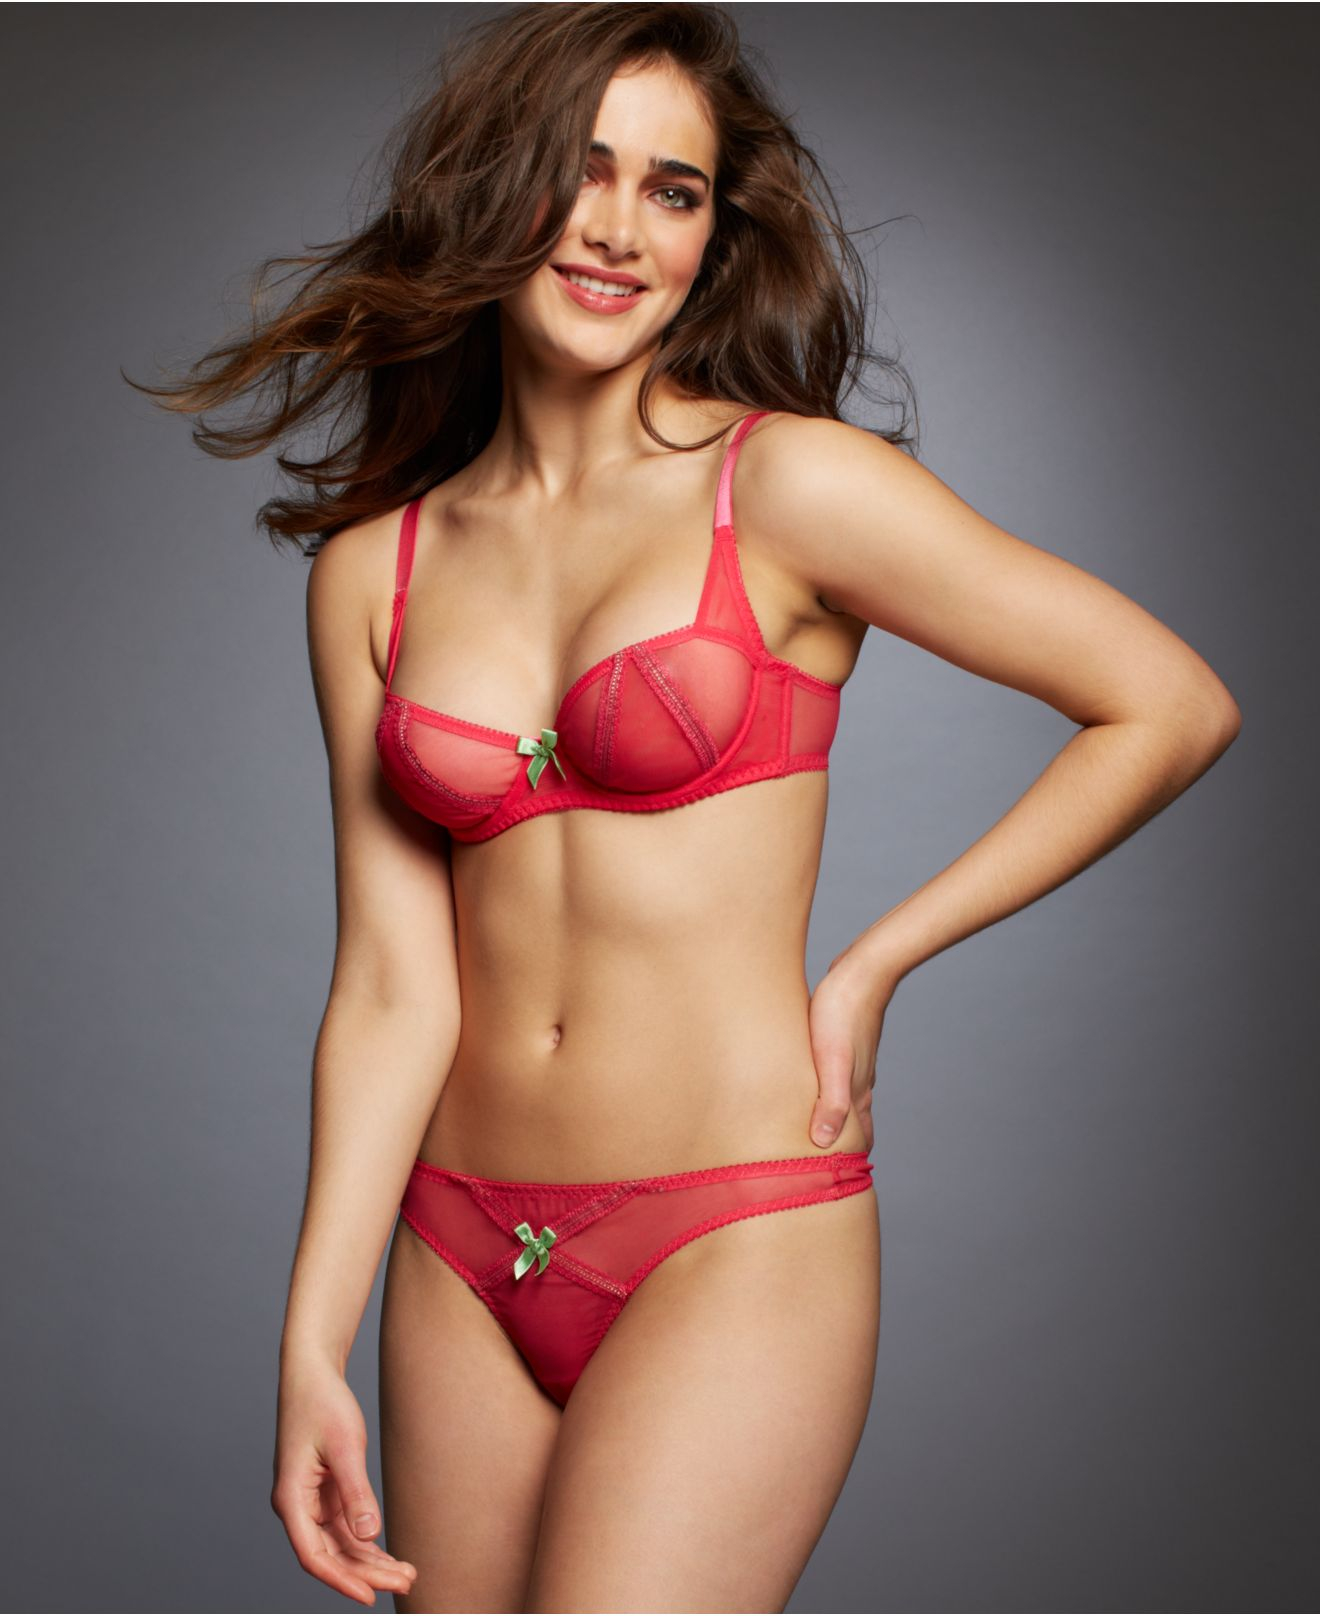 f184090539 Lyst - L Agent by Agent Provocateur Dorotia Balcony Bra L061-10 in Pink